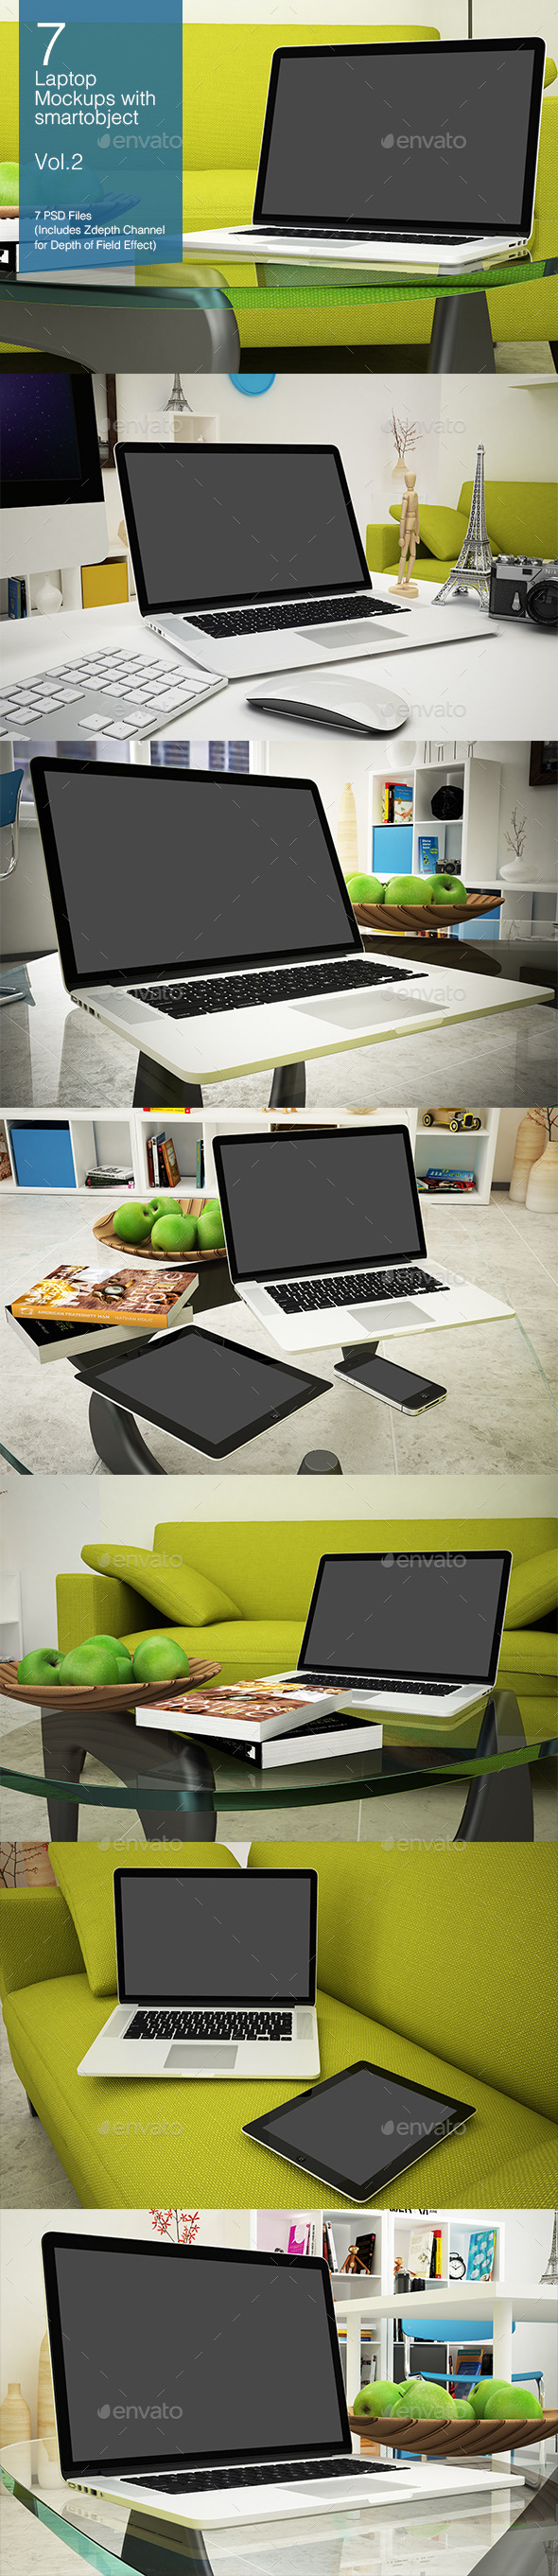 GraphicRiver Laptop Mockup 7 Poses Vol.2 8927426